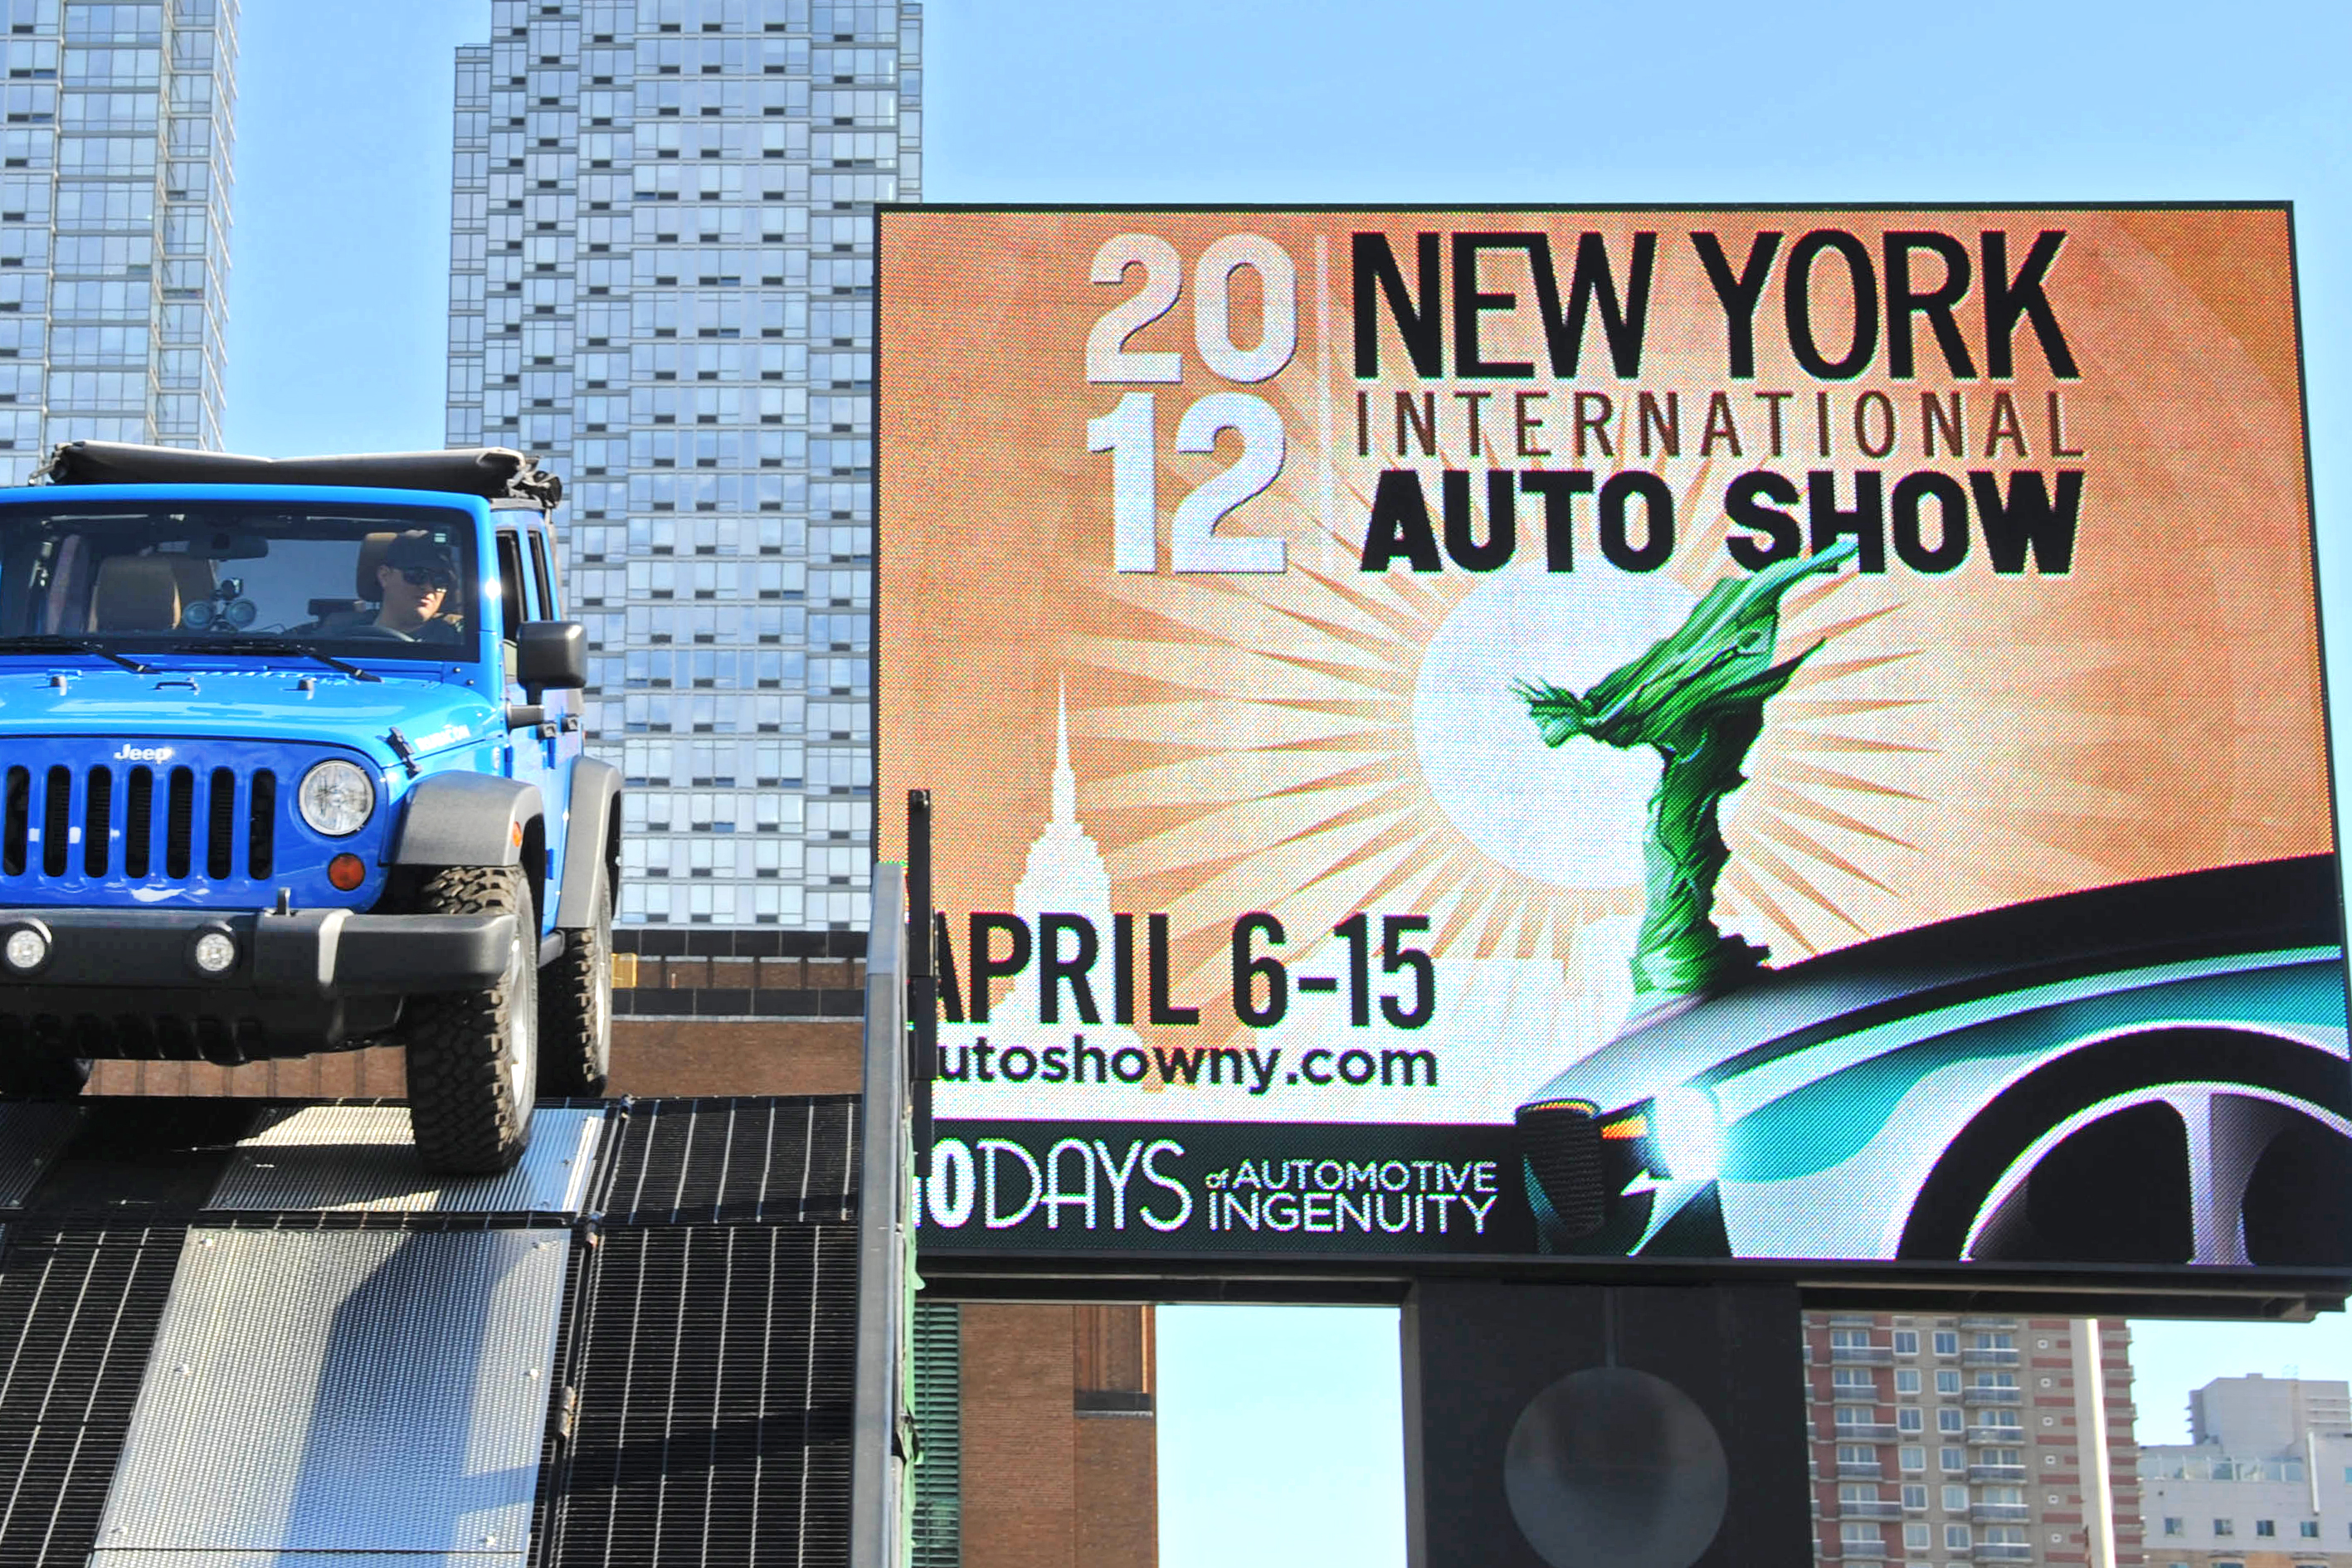 New York Autoshow: Das waren die Highlights